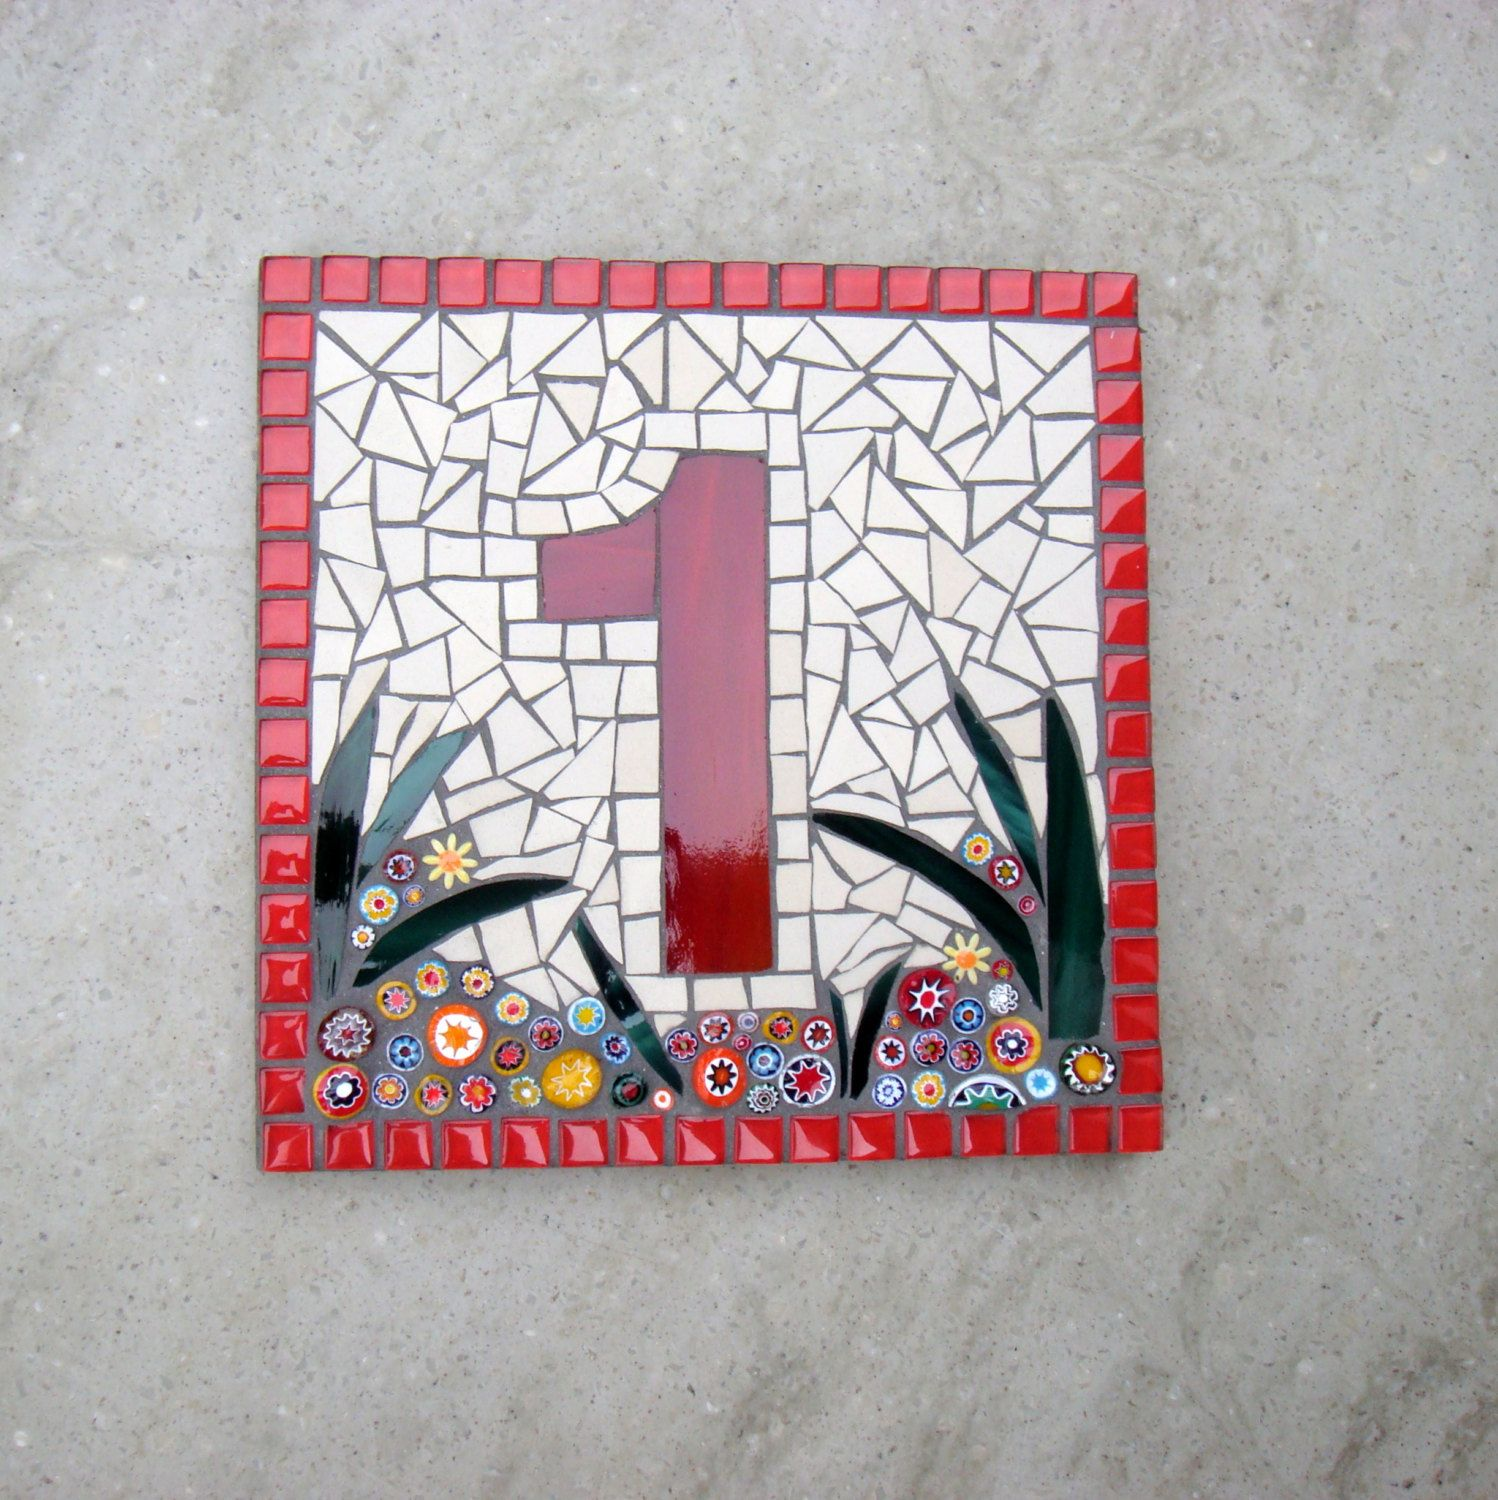 Custom mosaic house number sign plaque street address yard art custom mosaic house number street address sign plaque bespoke made to order by funkymosaicsuk on etsy dailygadgetfo Gallery